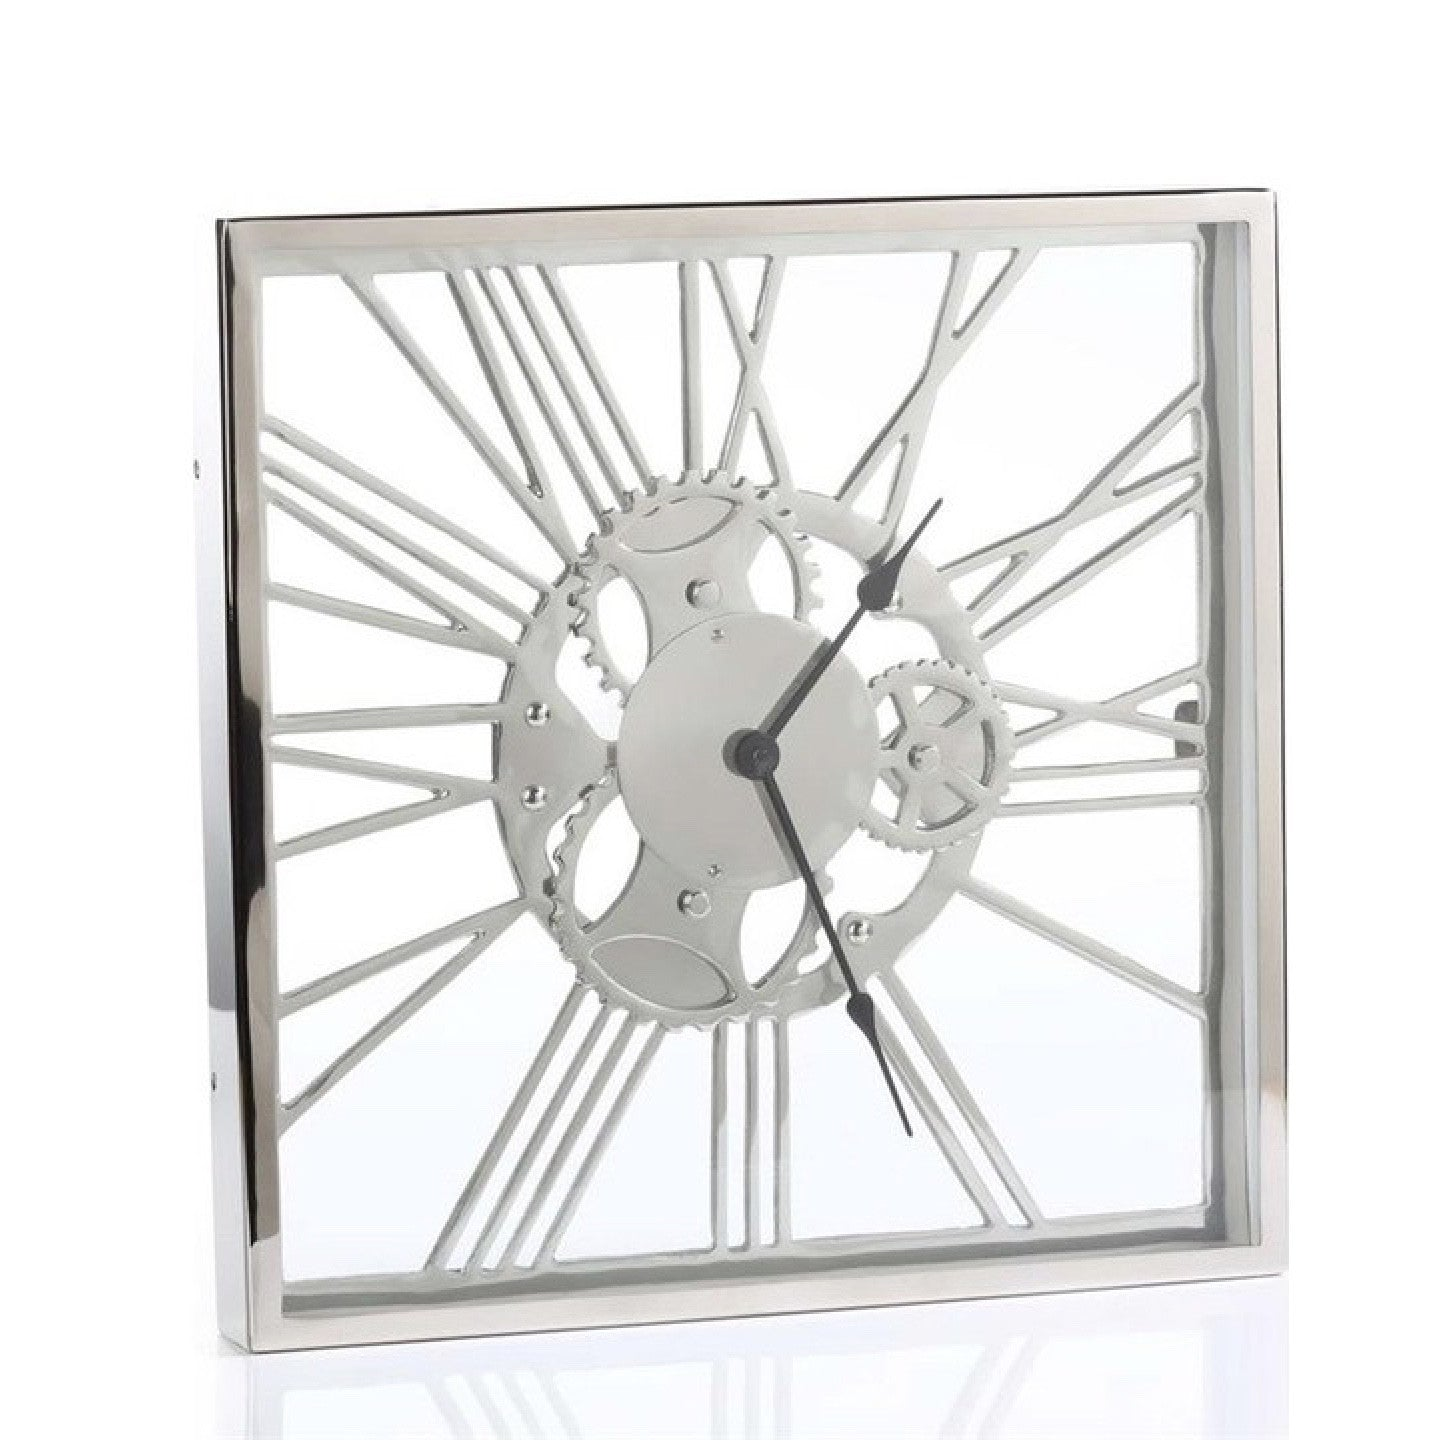 Zodax Regatta Polished Nickel Clock